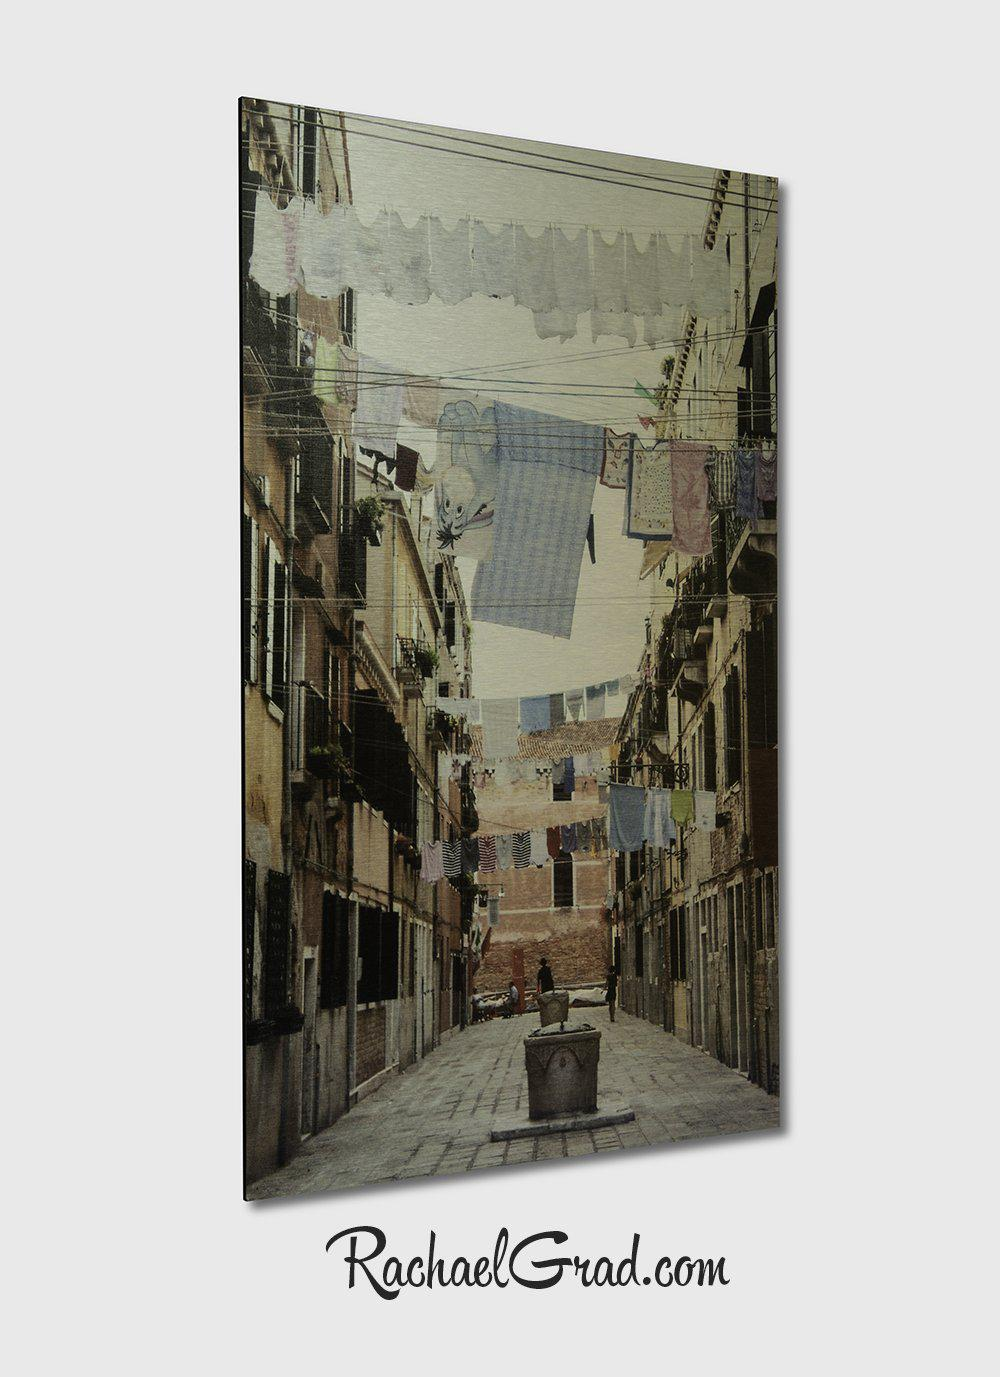 Laundry Lines Arsenale Venice Italy Art Print on Metal by Artist Rachael Grad Artwork